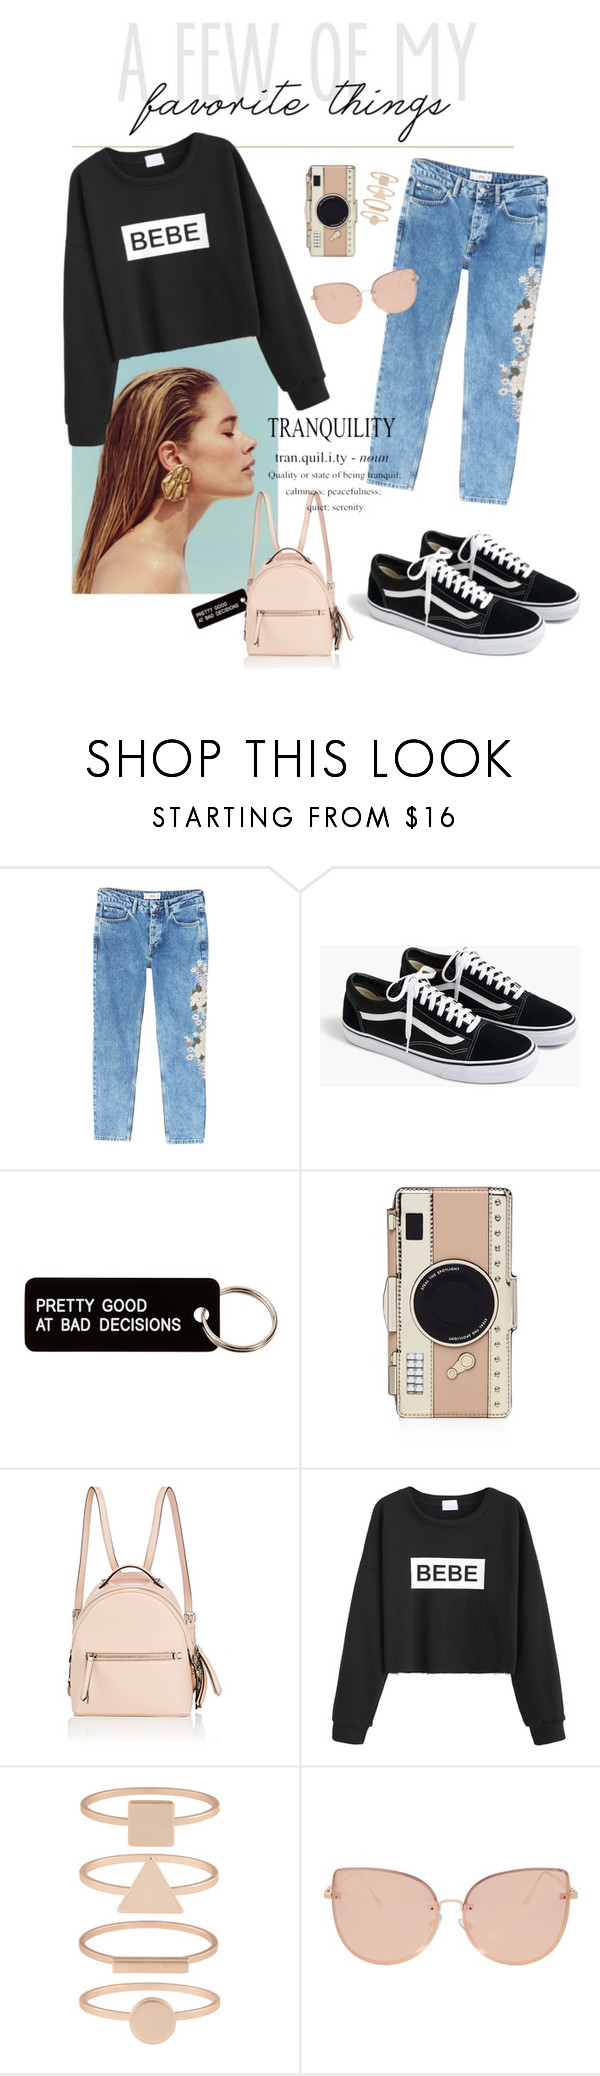 """""""Untitled #22"""" by capricorndiva22 ❤ liked on Polyvore featuring MANGO, J.Crew, Various Projects, Kate Spade, Fendi, WithChic, Accessorize and Topshop"""